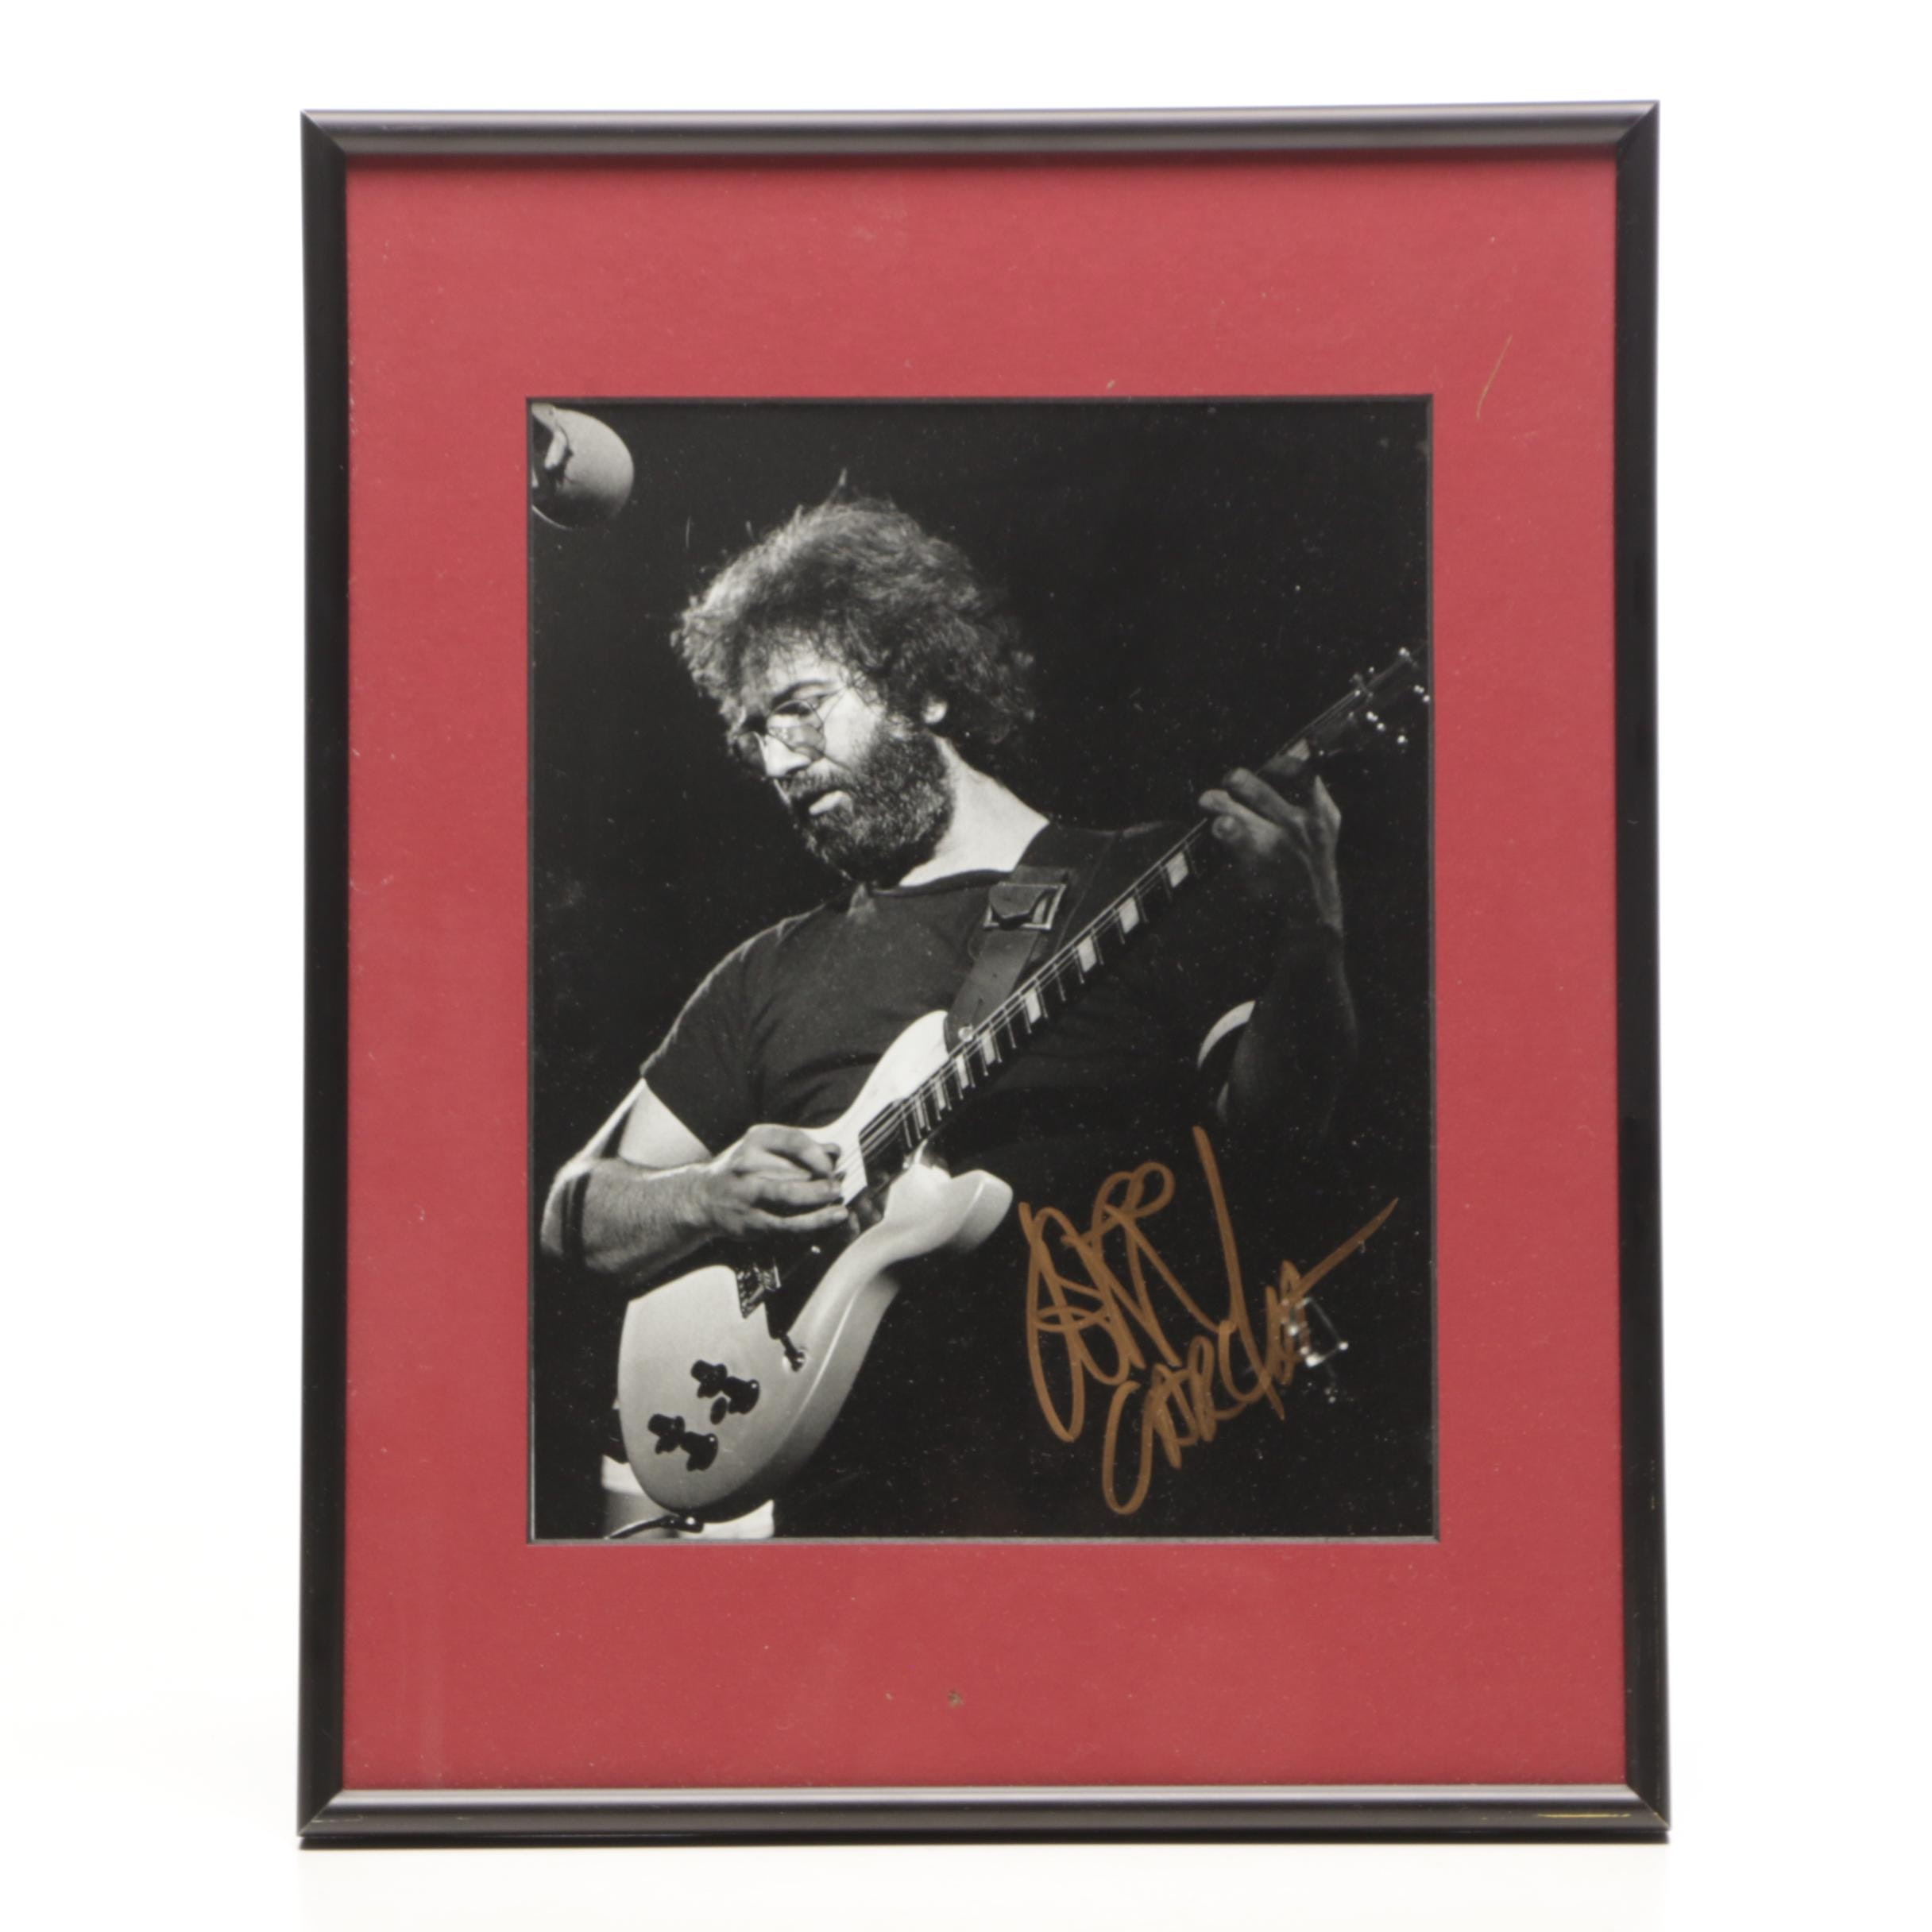 Jerry Garcia Signed Matted and Framed Photograph